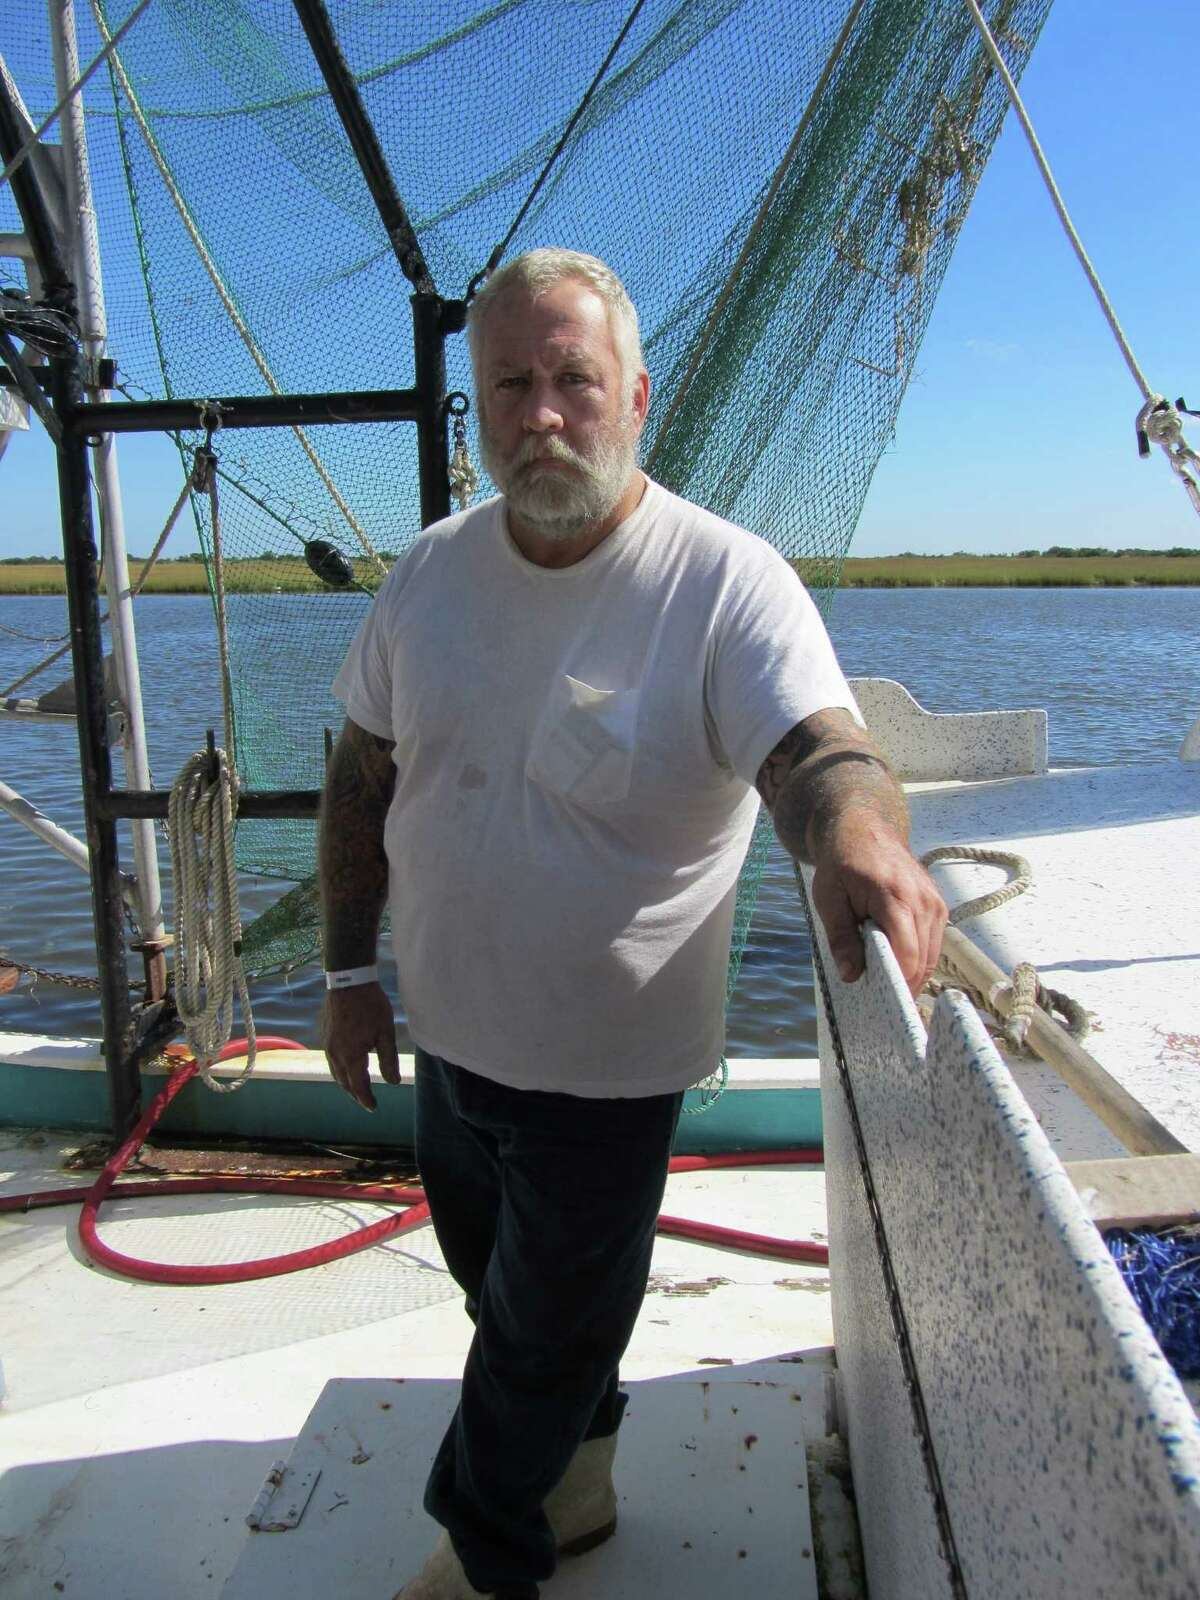 Deckhand Wayne Guidry of Galliano, La., says shrimp caught since the 2010 Gulf of Mexico oil spill often have sores on them.